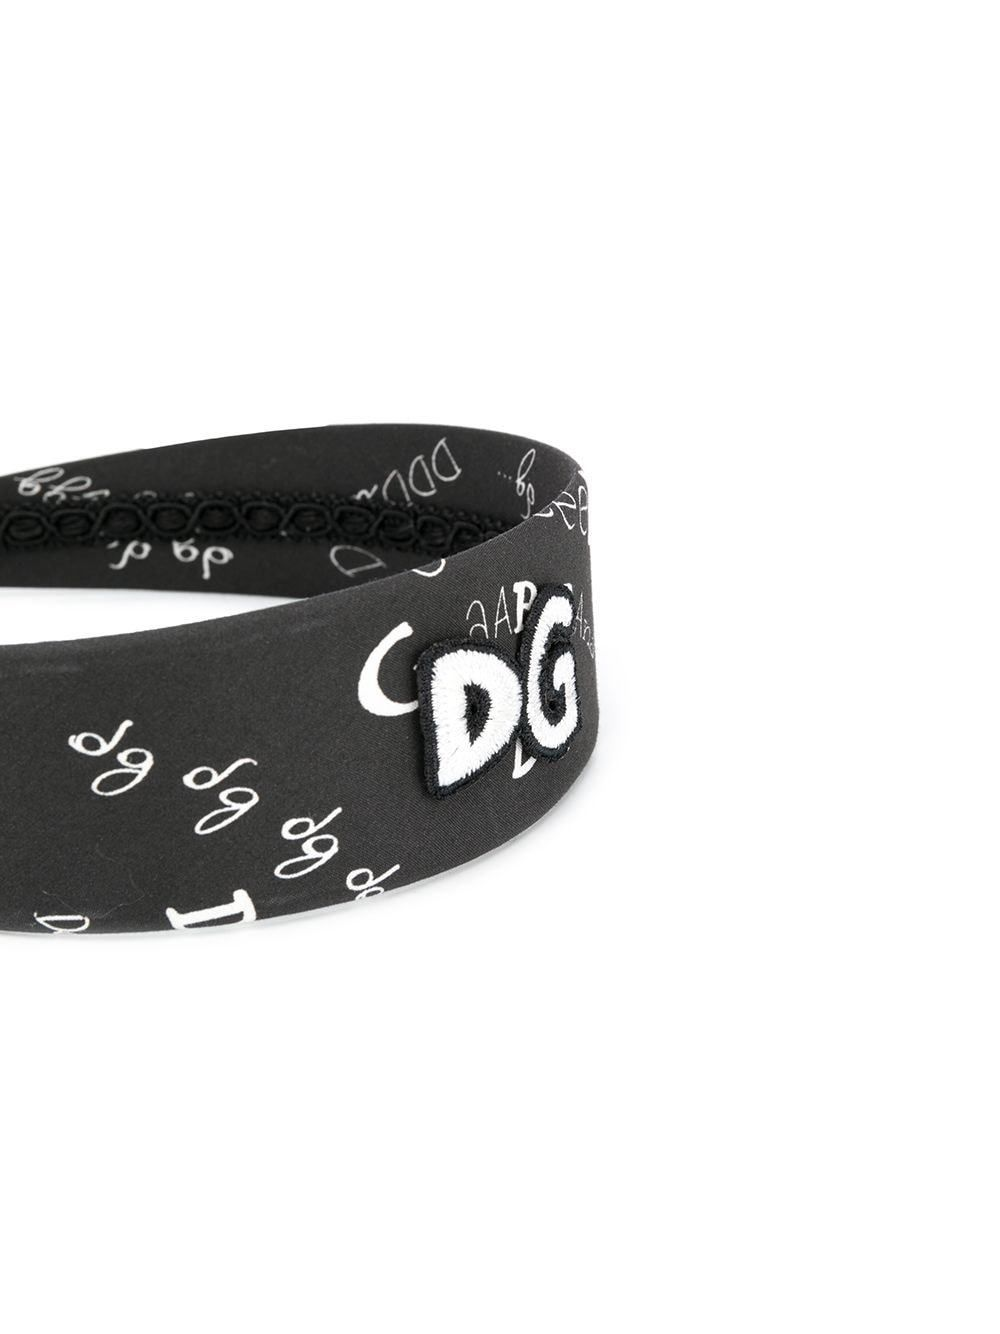 DOLCE & GABBANA KIDS Logo Print Headband Back - Maison De Fashion